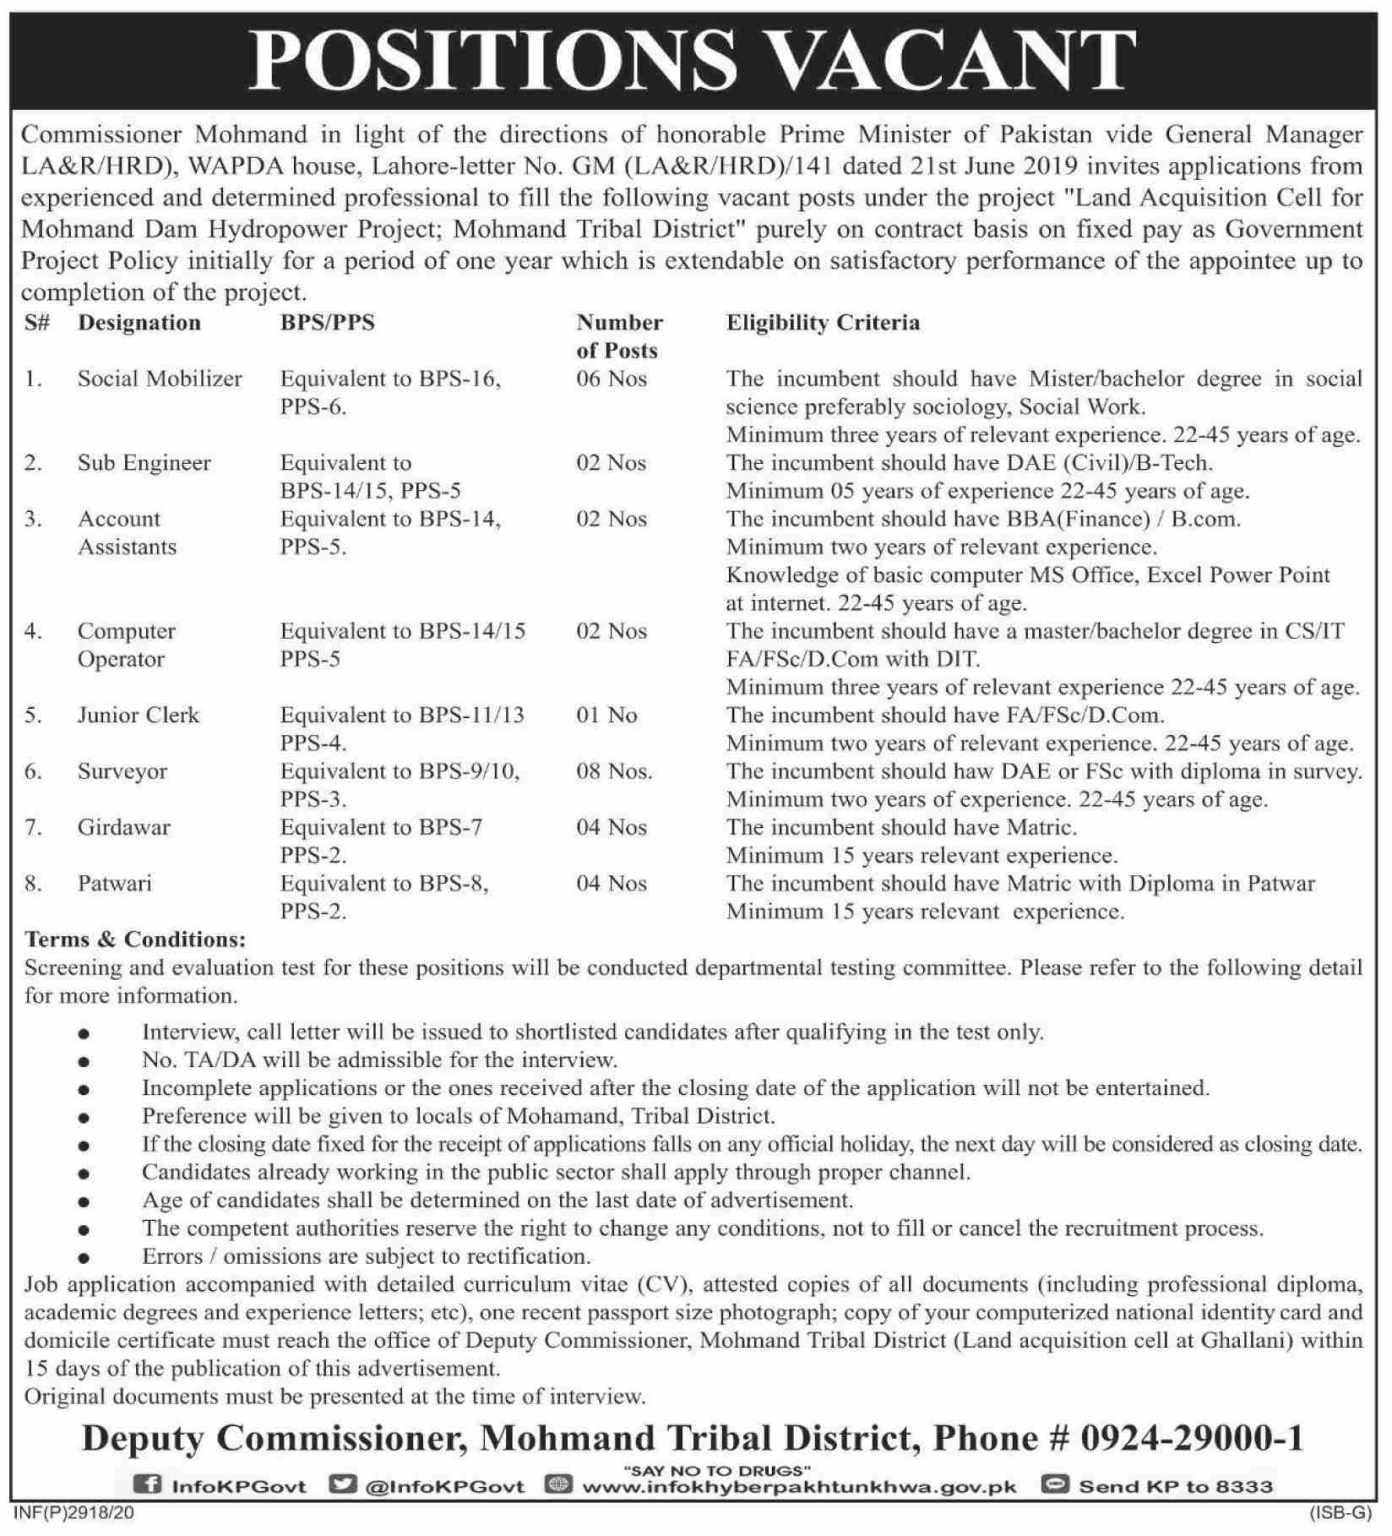 Land Acquisition Cell Mohmand Dam Hydropower Project Jobs 2020